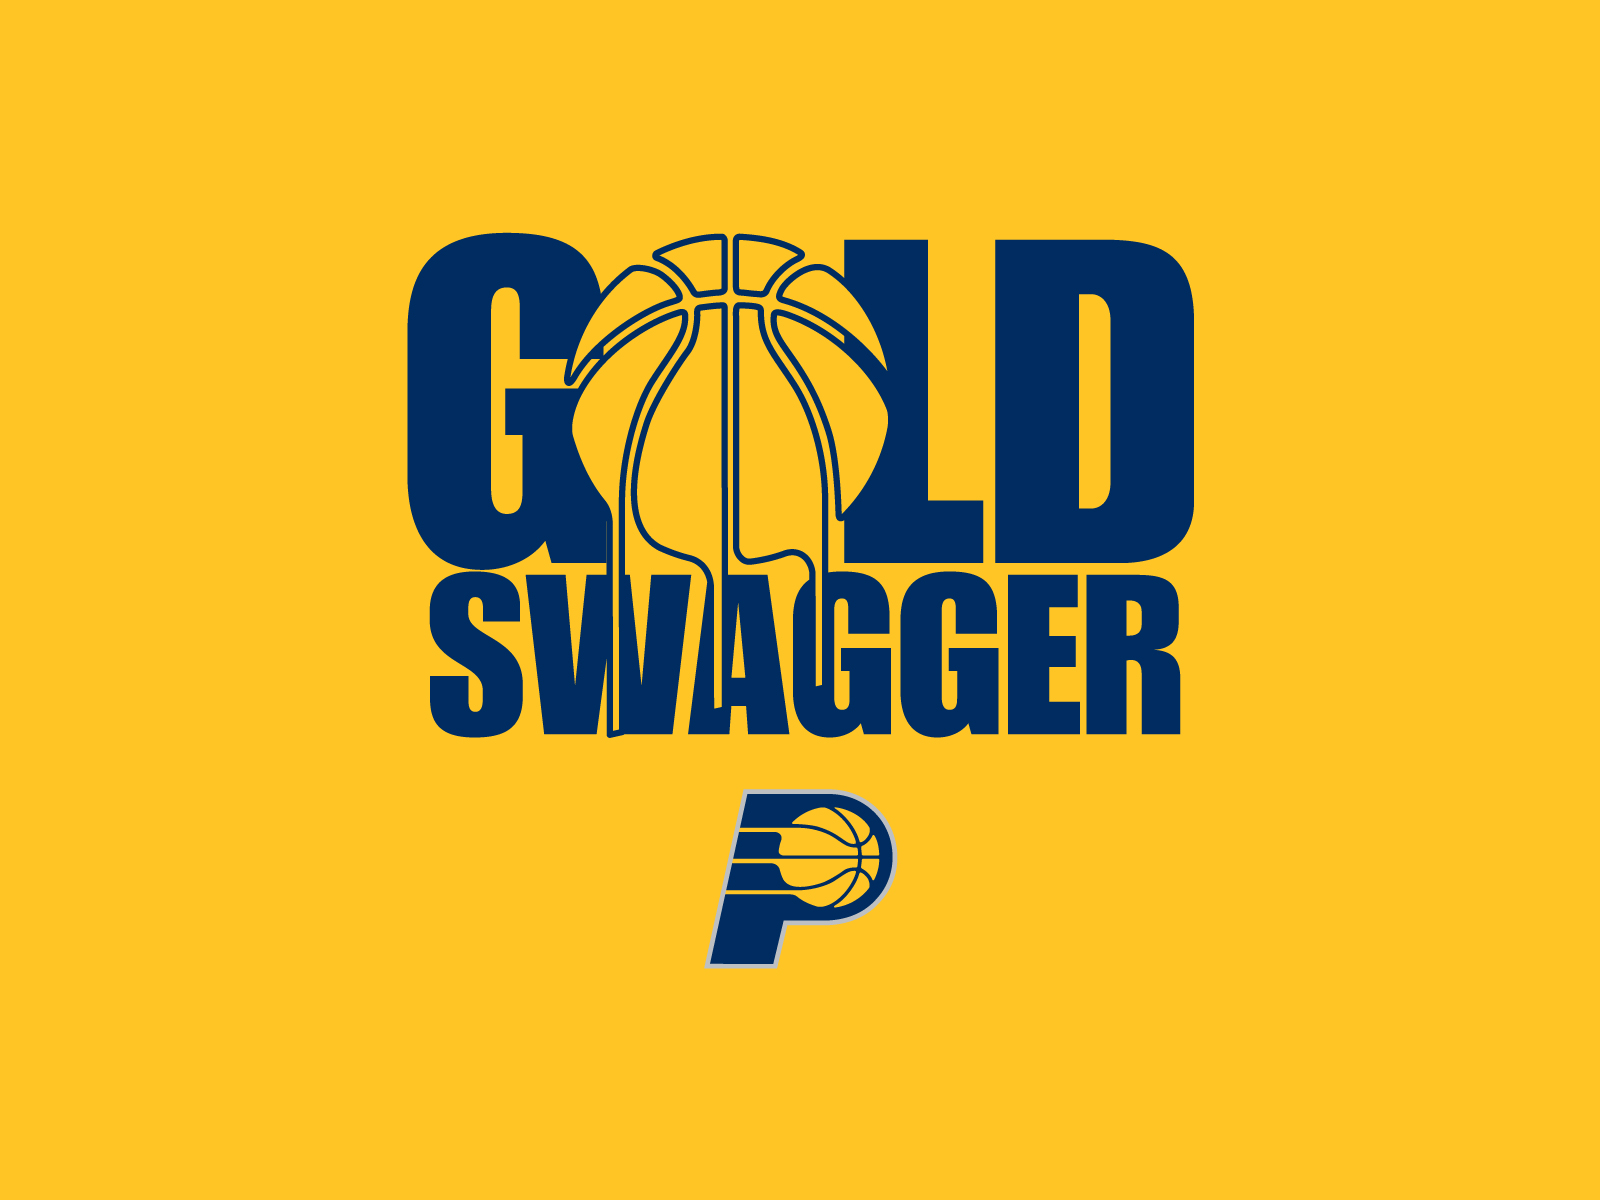 Illpapers sports highlights news videos wallpapers pacers gold swagger wallpaper voltagebd Images